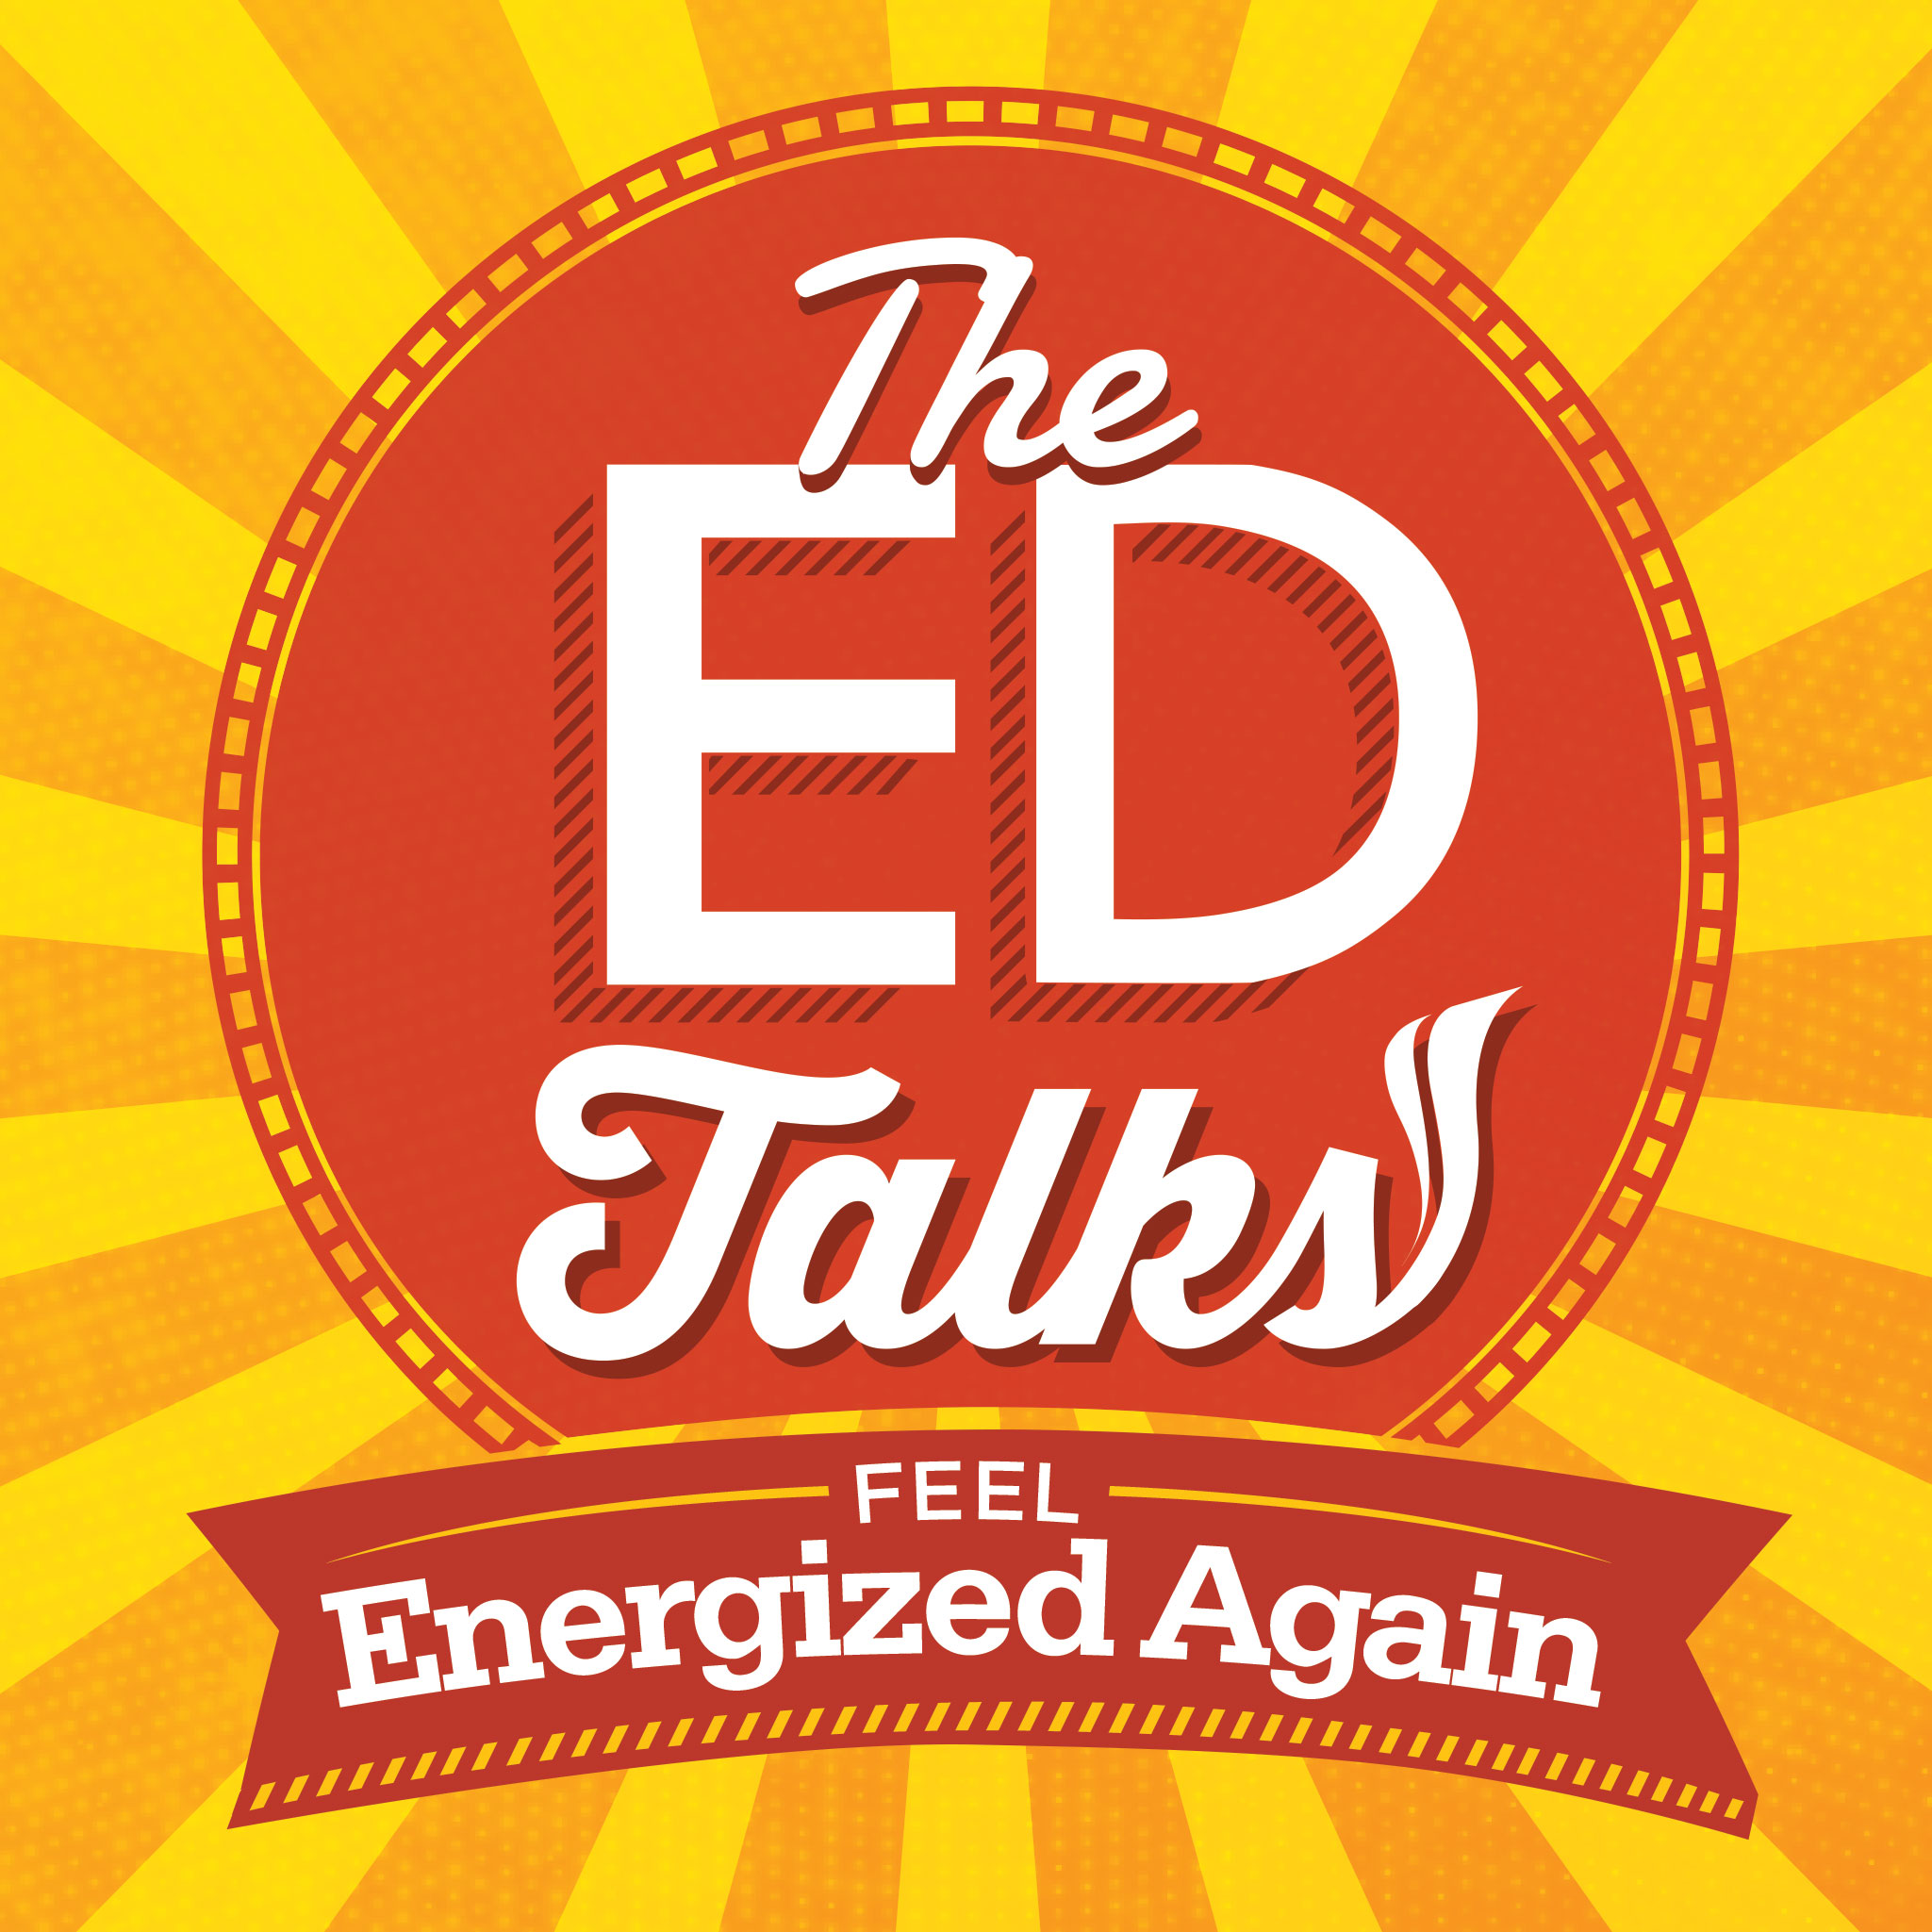 TheEdTalks | Helping Busy People Feel Energized Again